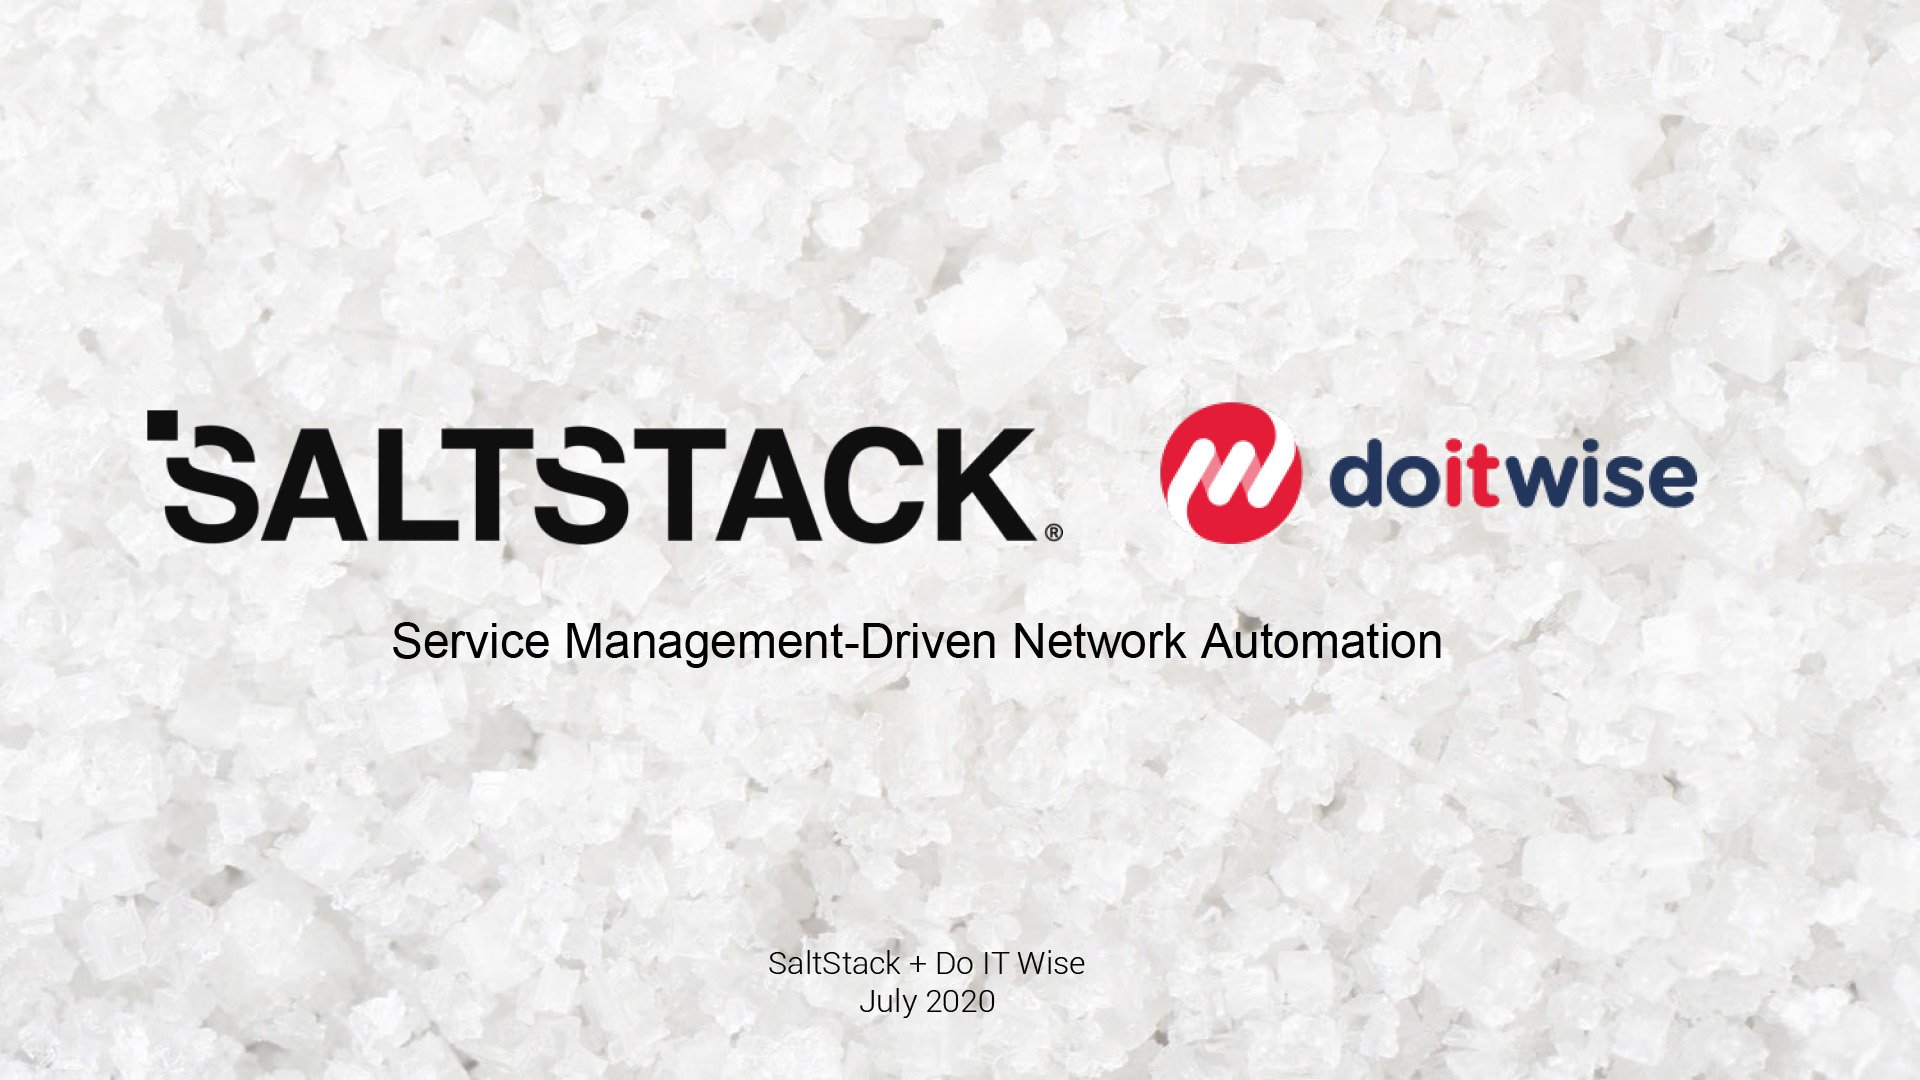 Webinar: Service Management-Driven Network Automation with SaltStack and Do IT Wise